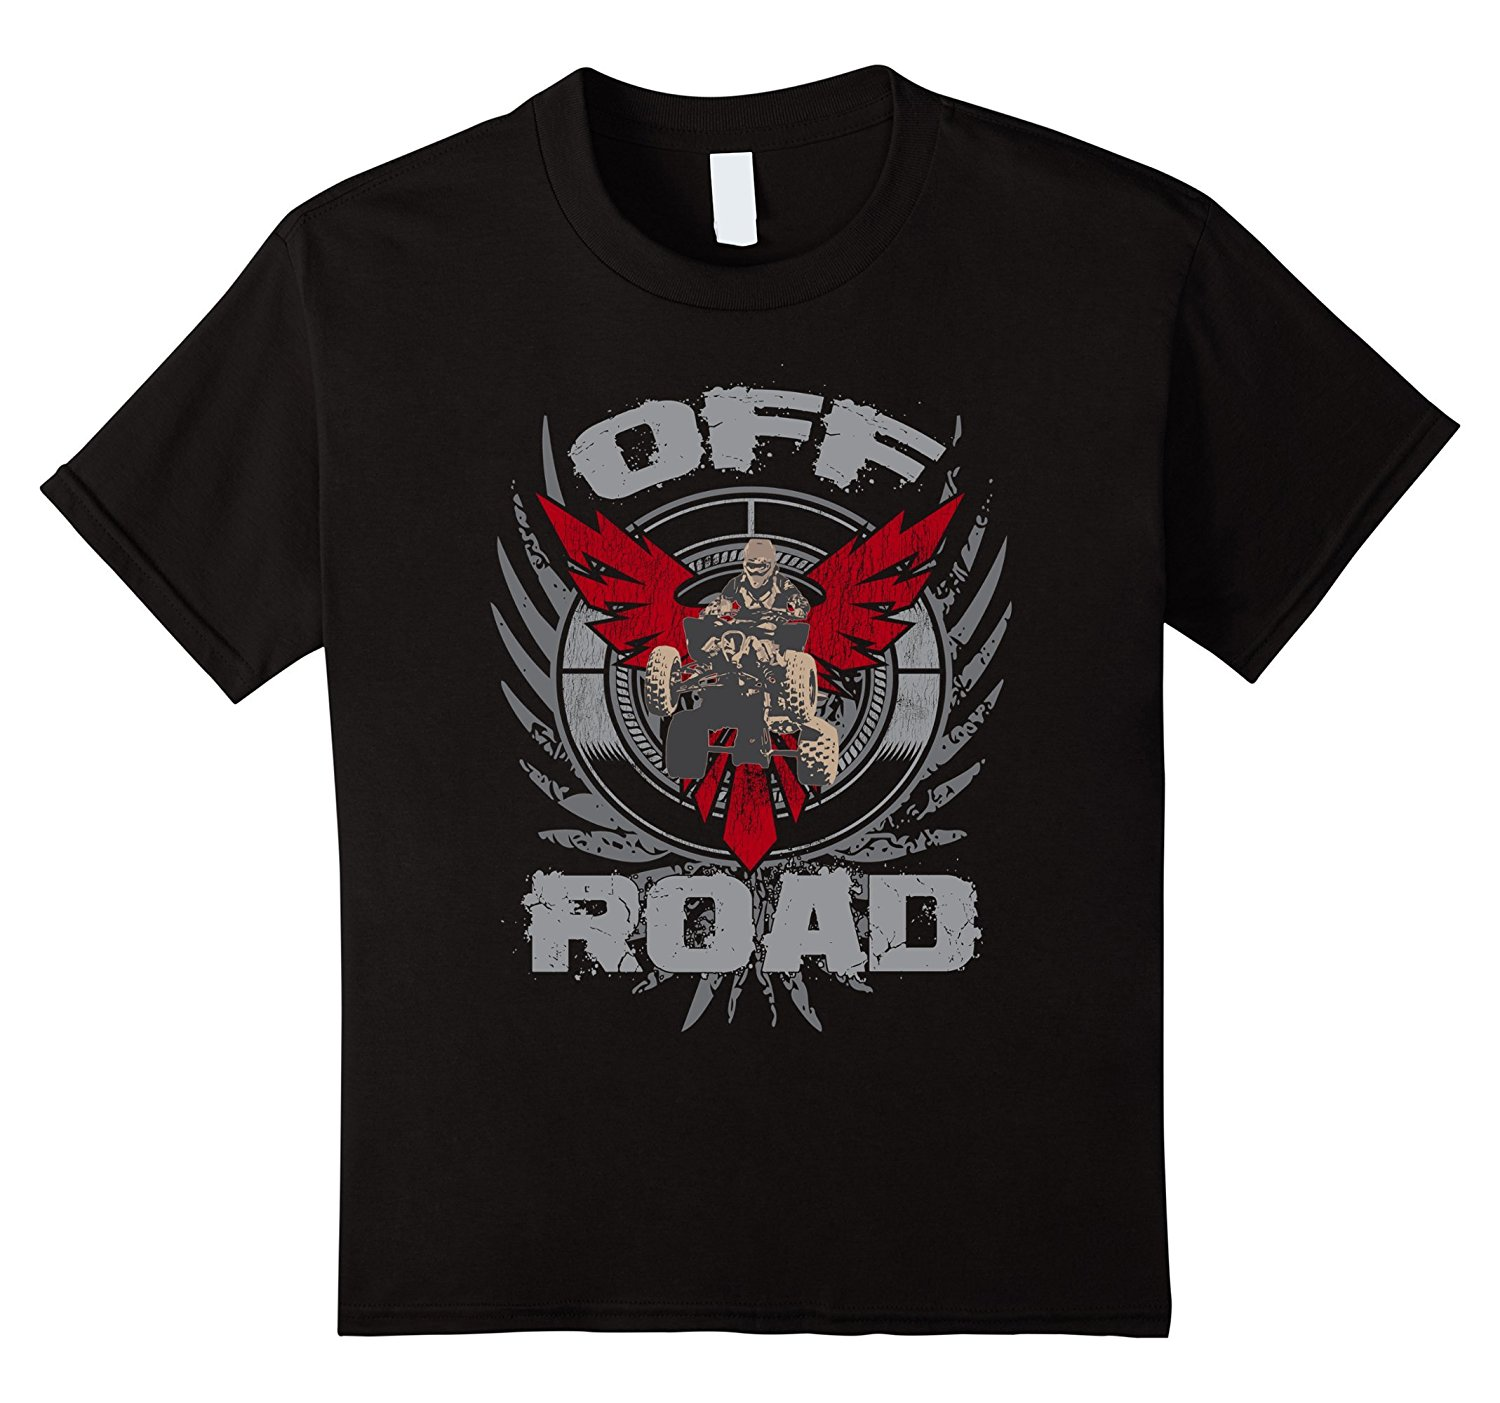 T shirt design quad cities - Best Selling Male Natural Cotton Shirt Sleeve Tops T Shirt Homme Off Road Atv Quad T